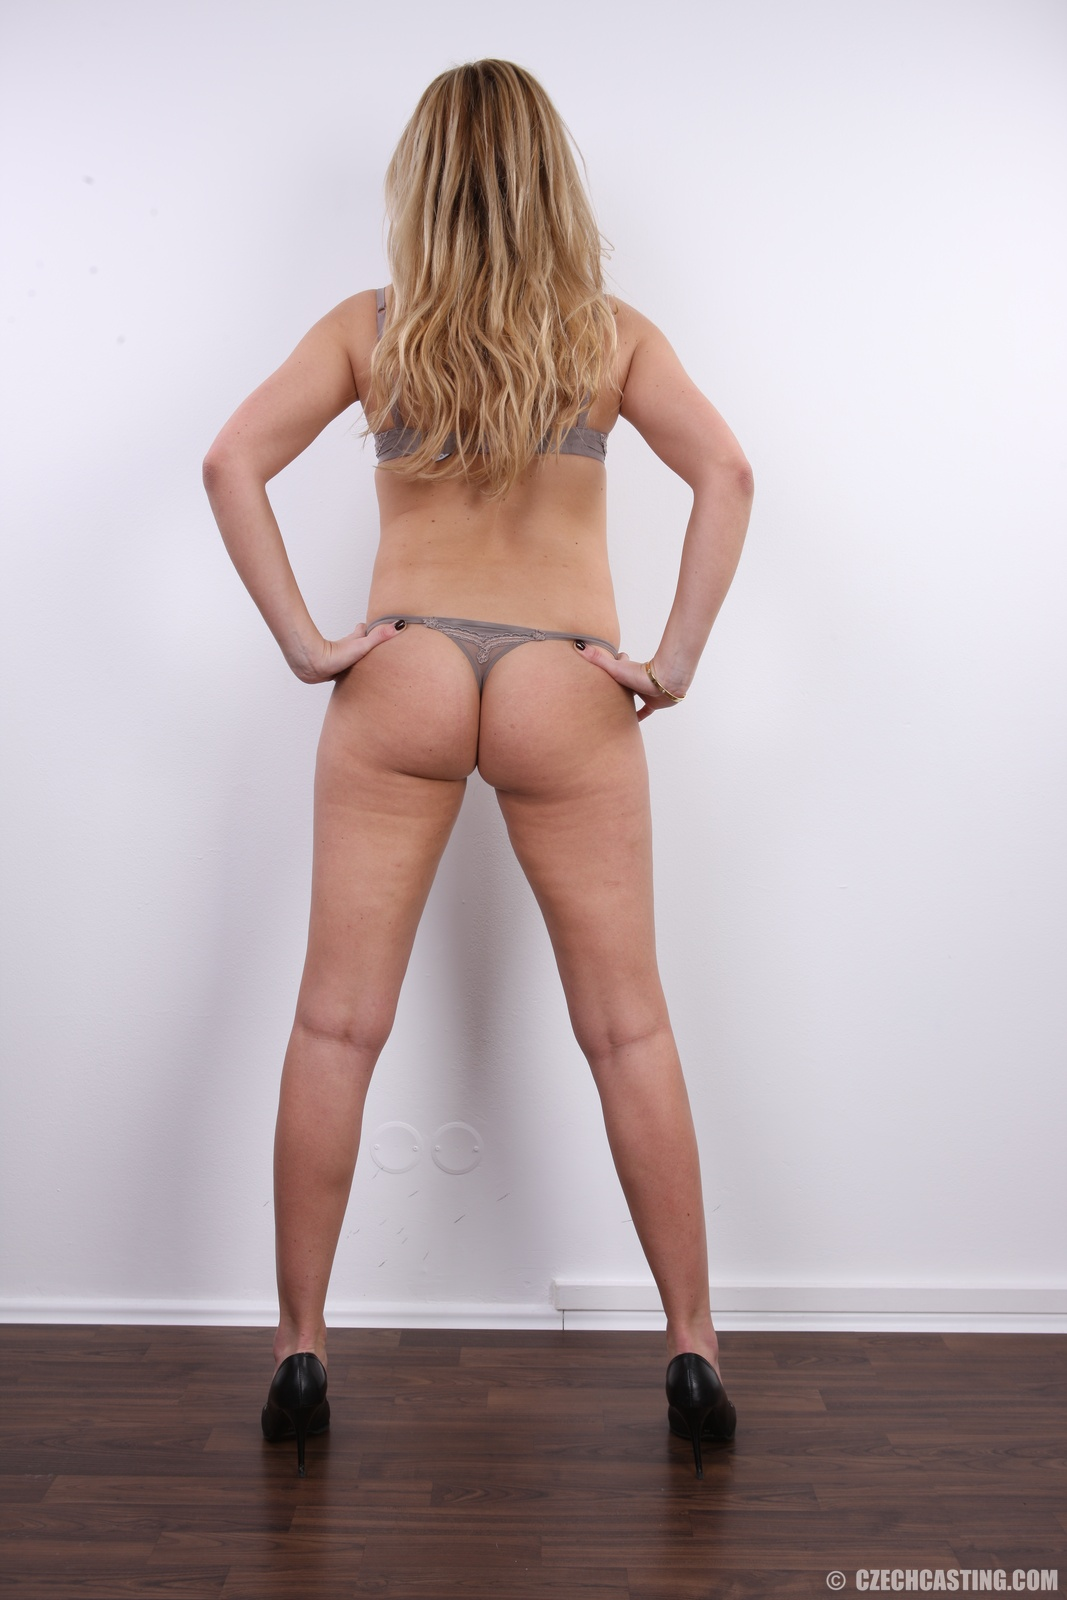 gynekologie video czech casting andrea